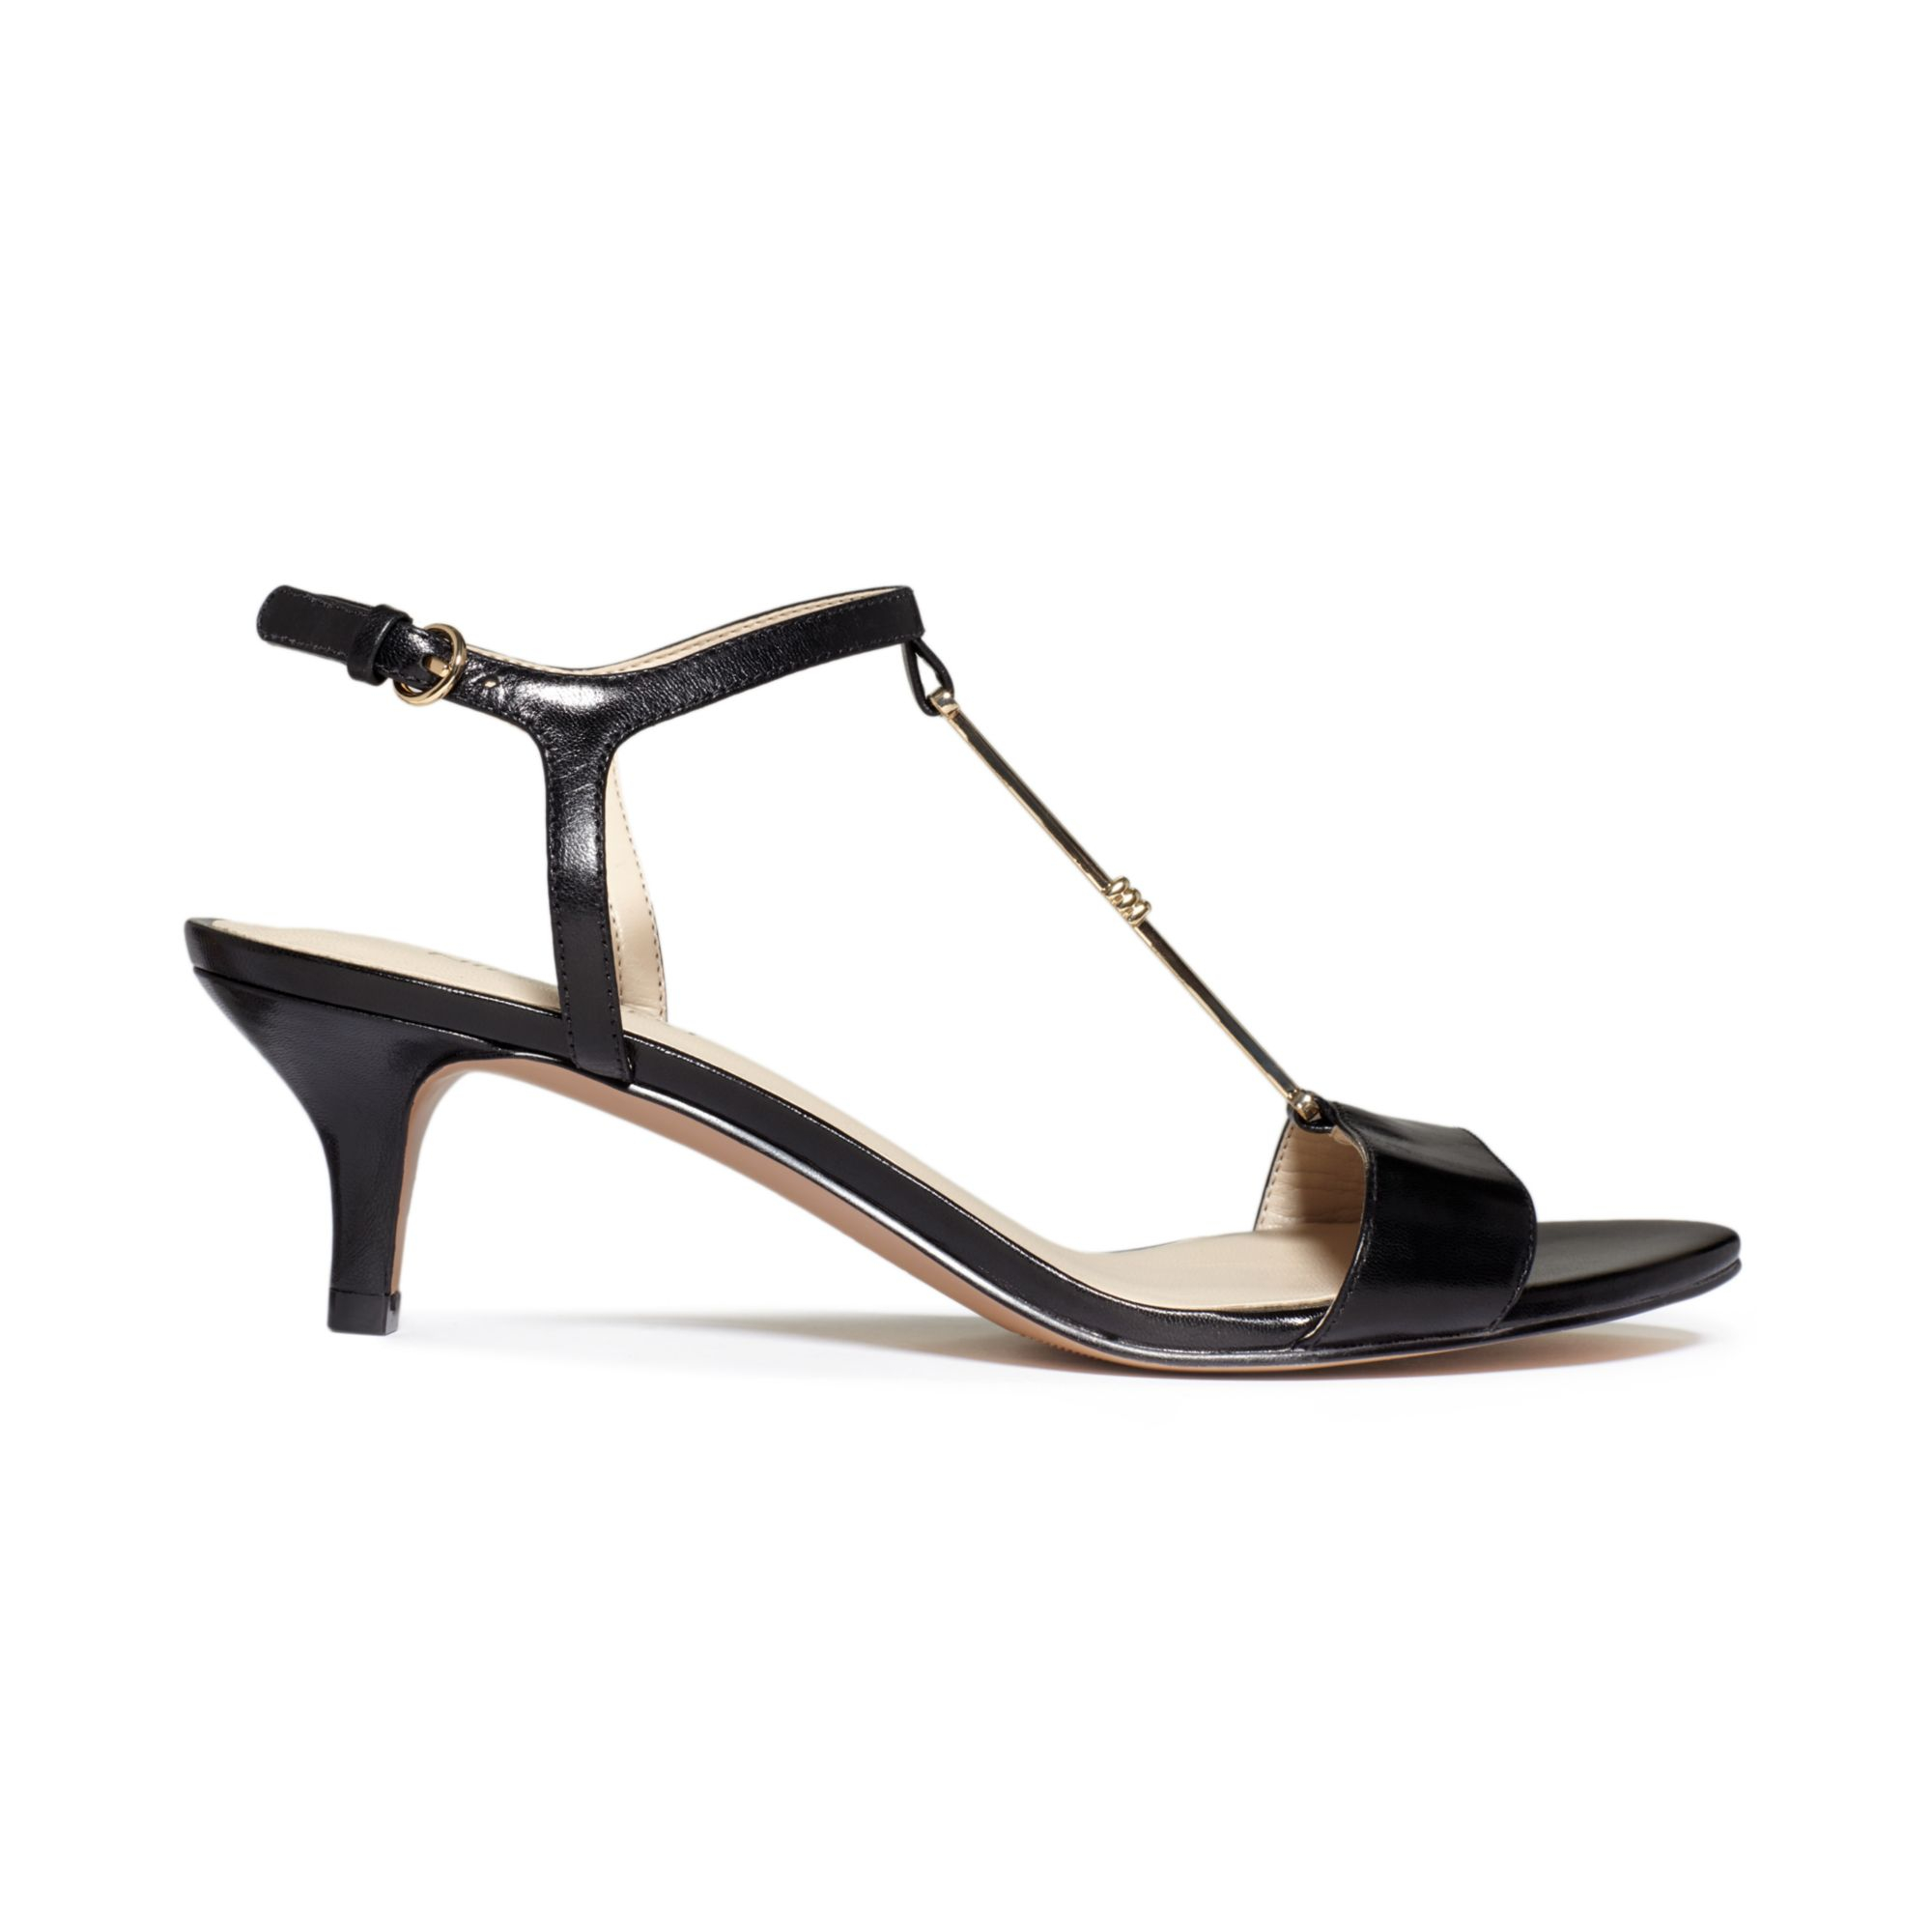 Shop women's heels & wedges at anthonyevans.tk and see our entire collection of women's pumps, sandals, high heels, block heels and wedges. Cole Haan.